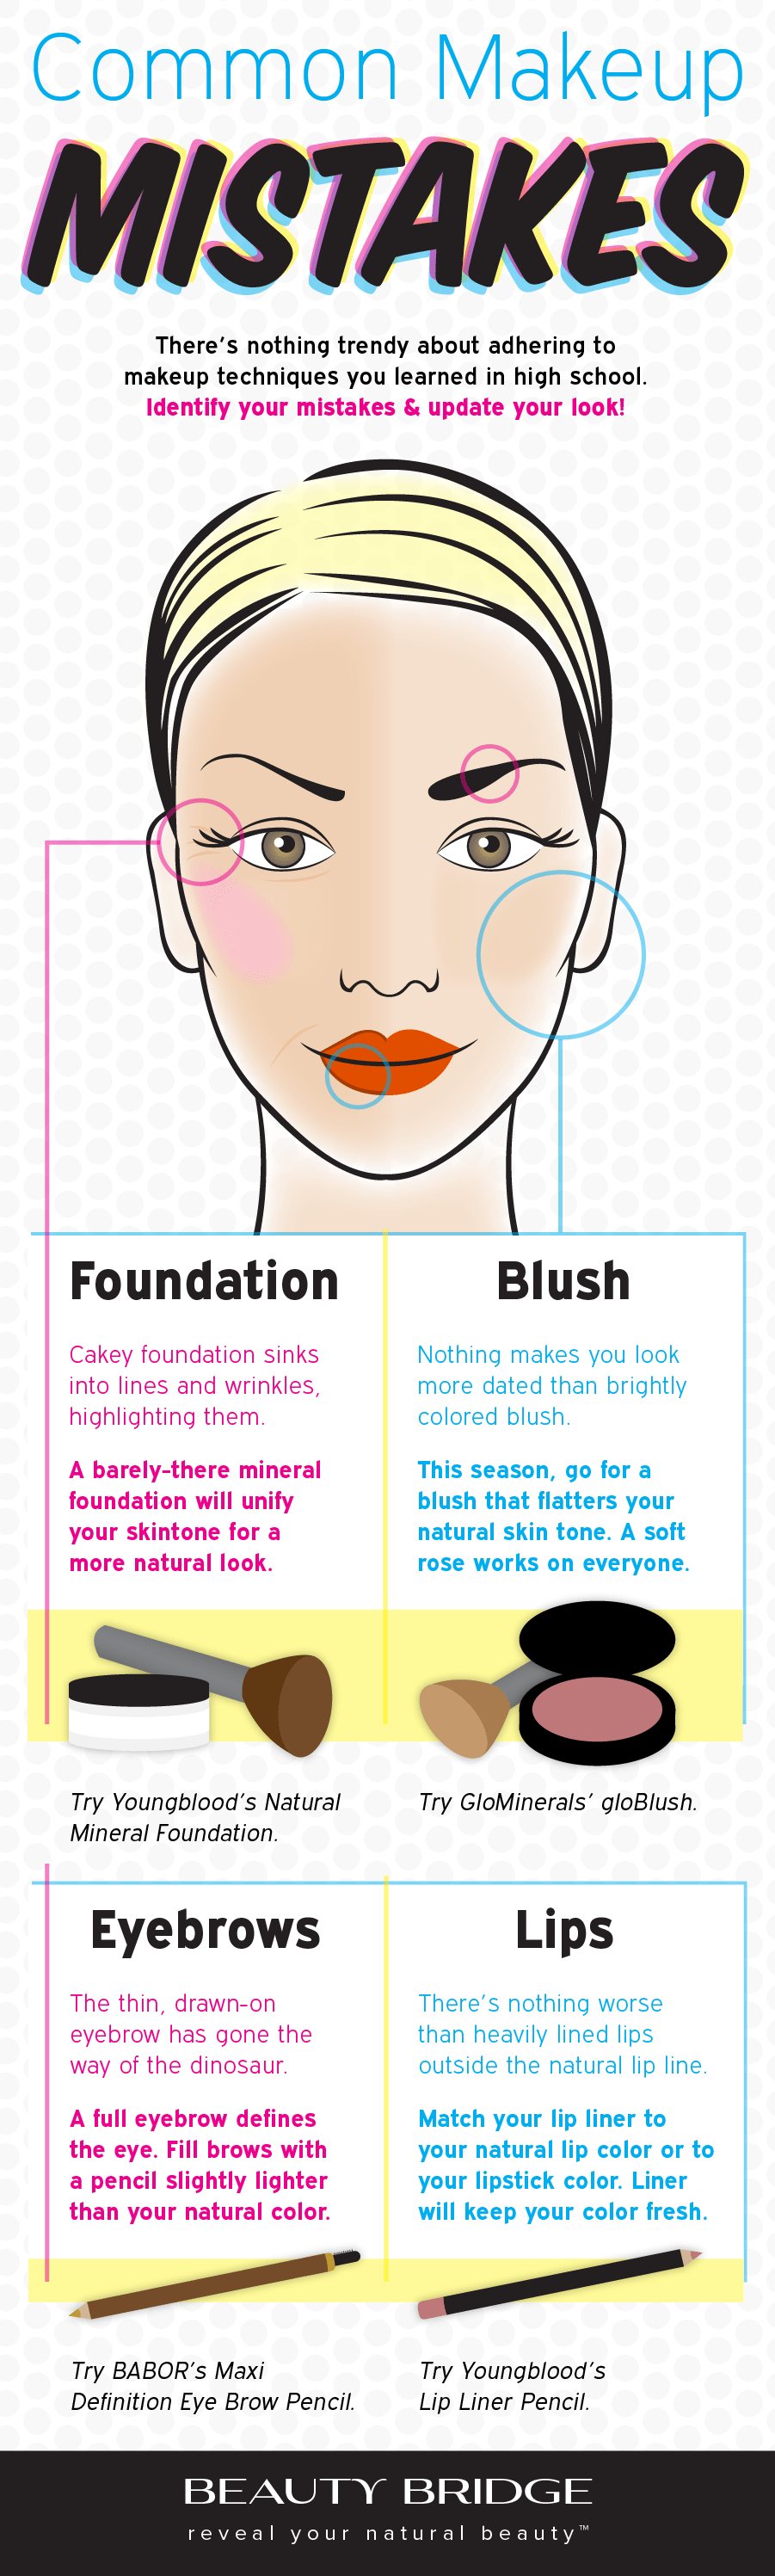 Common Makeup Mistakes To Avoid